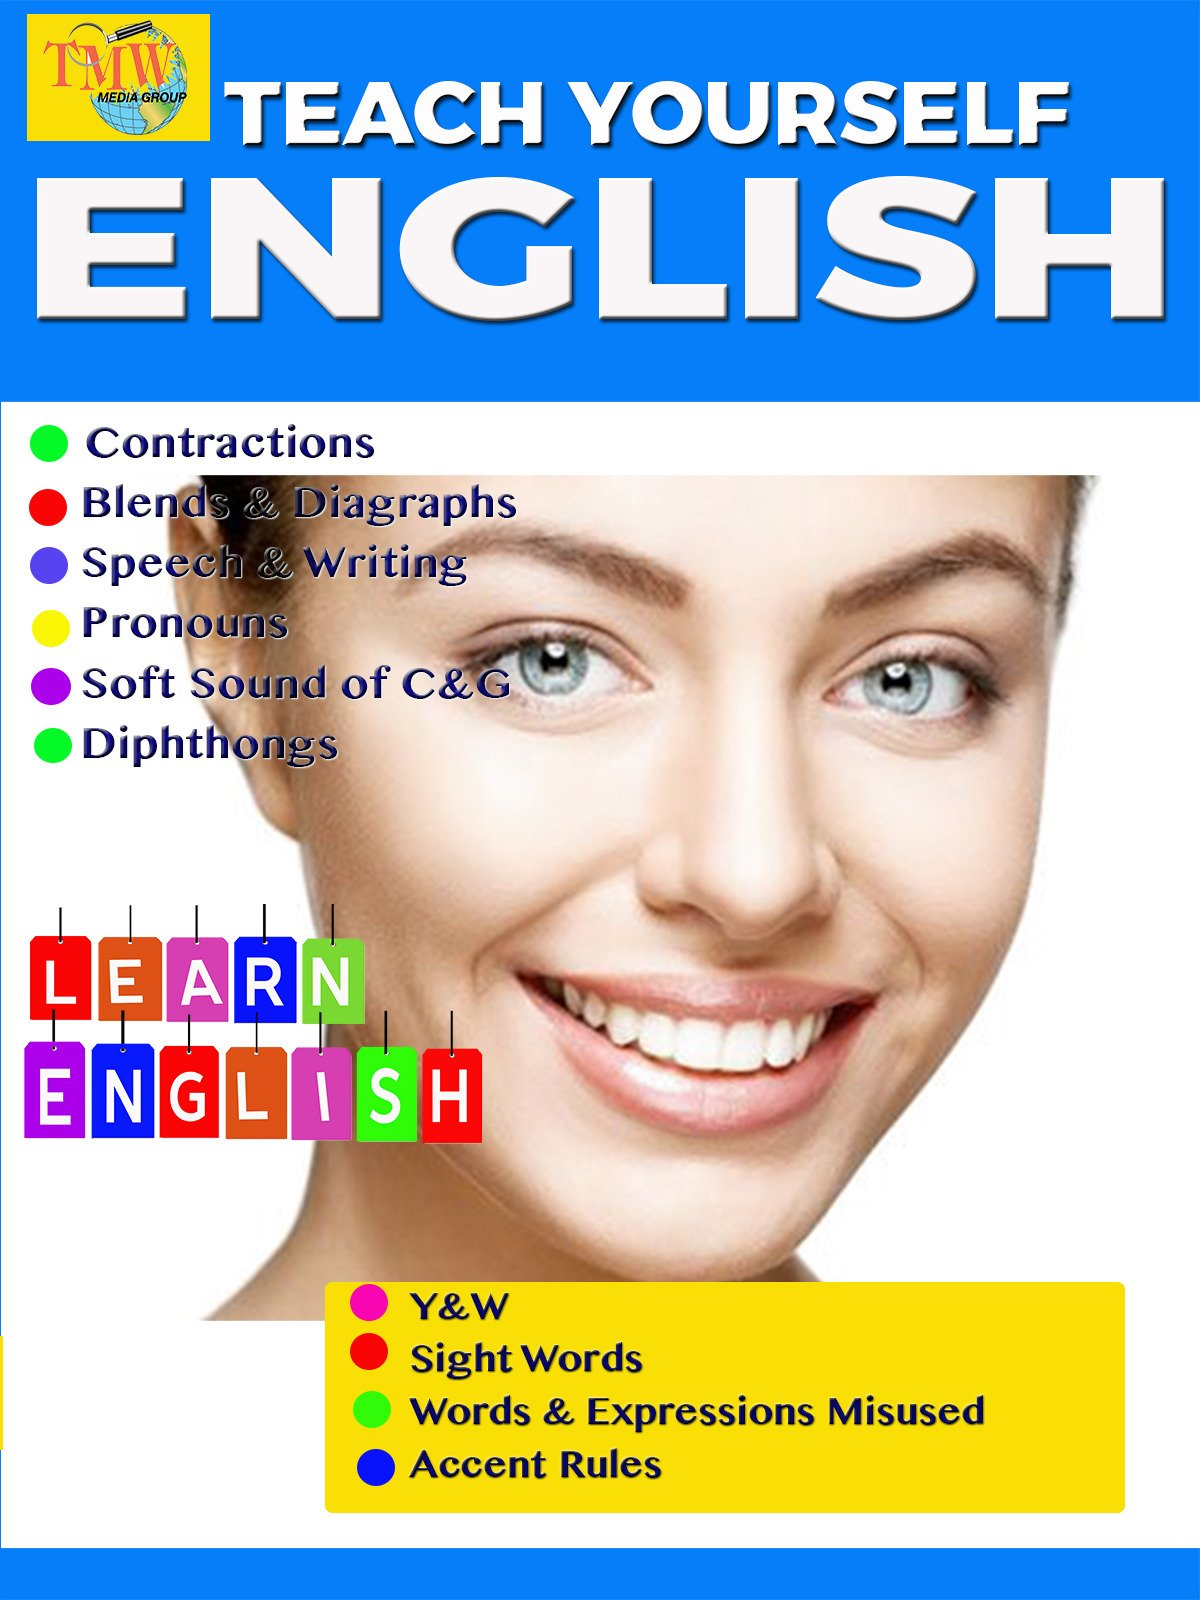 Teach Yourself English: Contractions, Blends & Diagraphs, Speech & Writing, Pronouns, Soft Sound of C & G, Diphthongs, Y & W, Sight Words, Words & Expressions Misused, Accent Rules on Amazon Prime Video UK